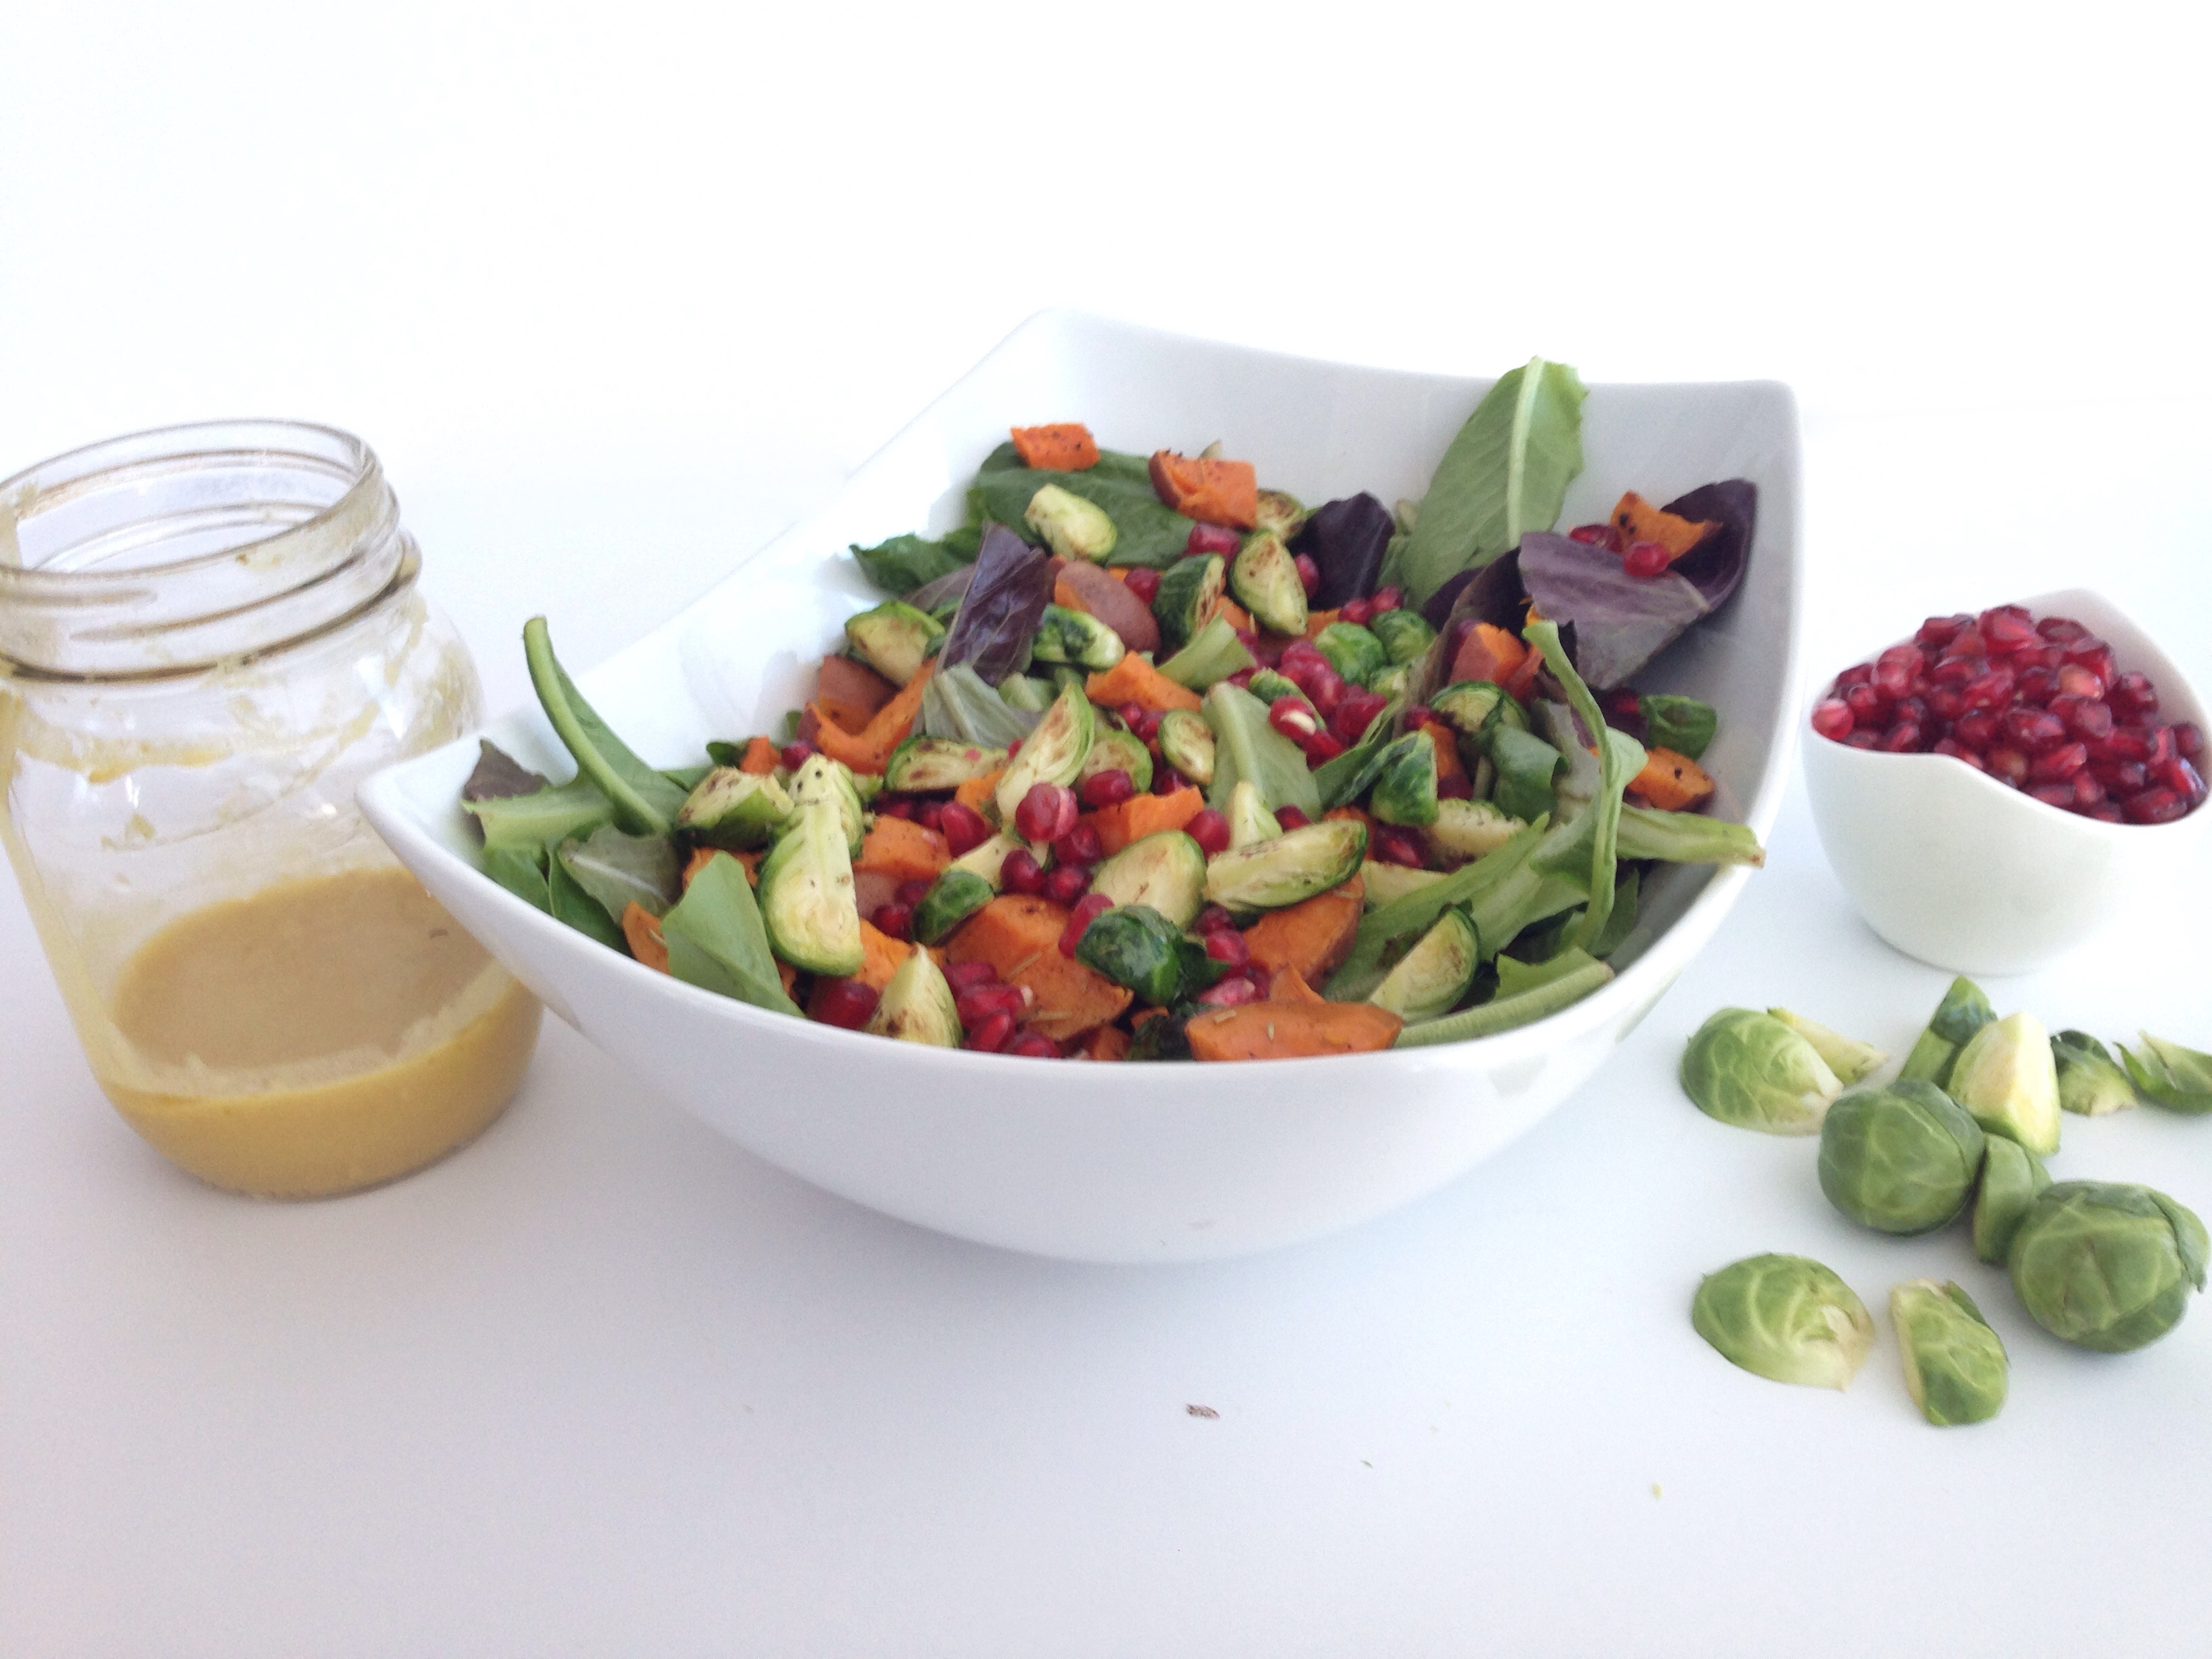 simple festive salad with dijon ginger dressing nourishing sweet potatoes brussels sprouts and pomegranate seeds